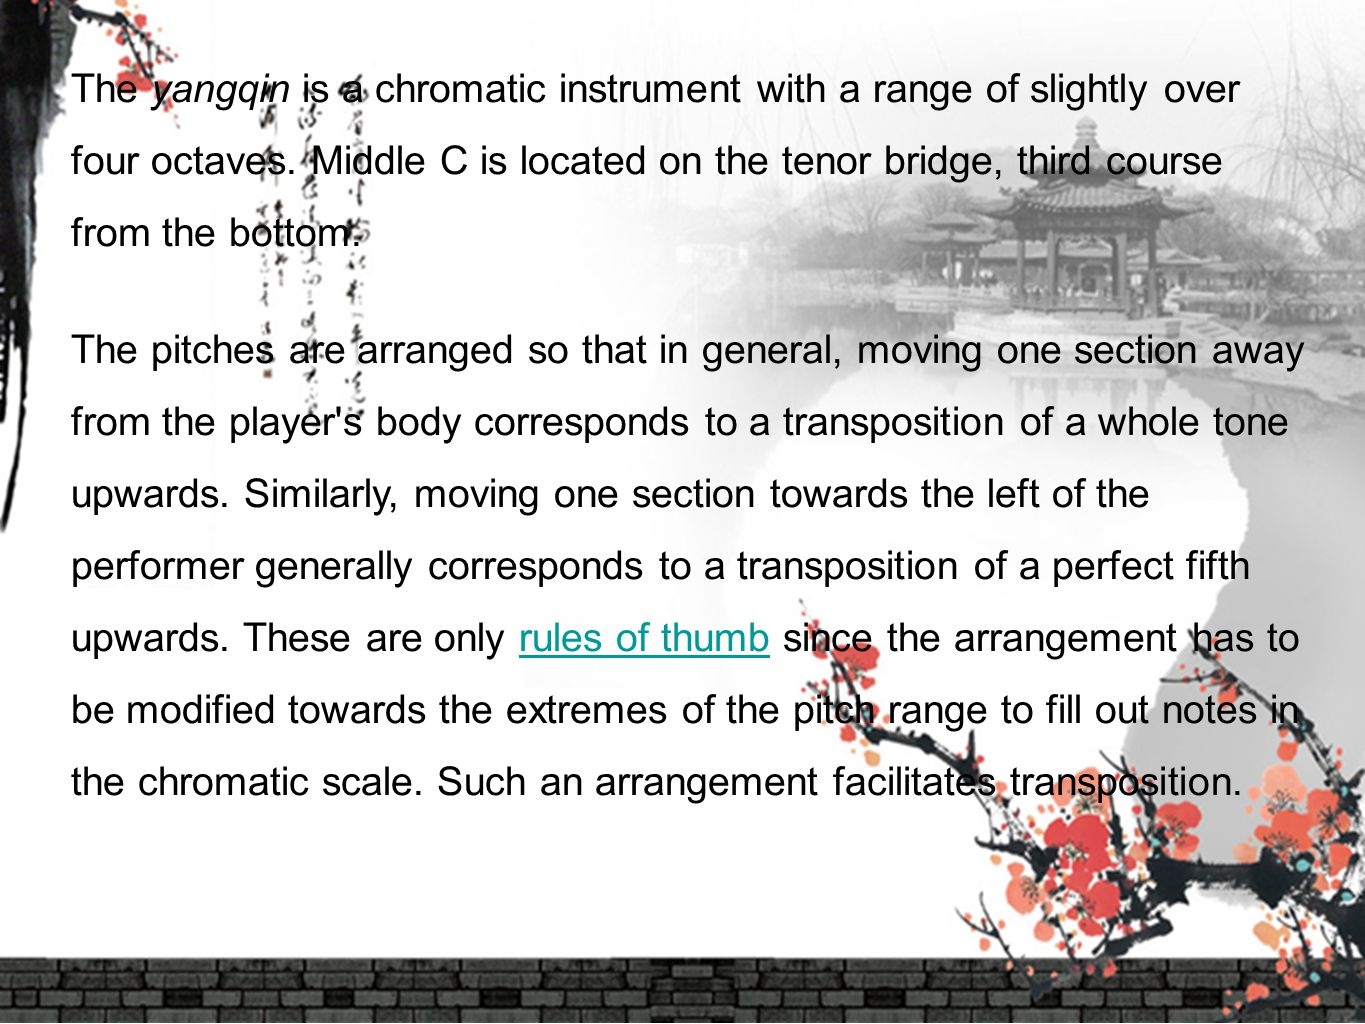 The yangqin is a chromatic instrument with a range of slightly over four octaves. Middle C is located on the tenor bridge, third course from the bottom.